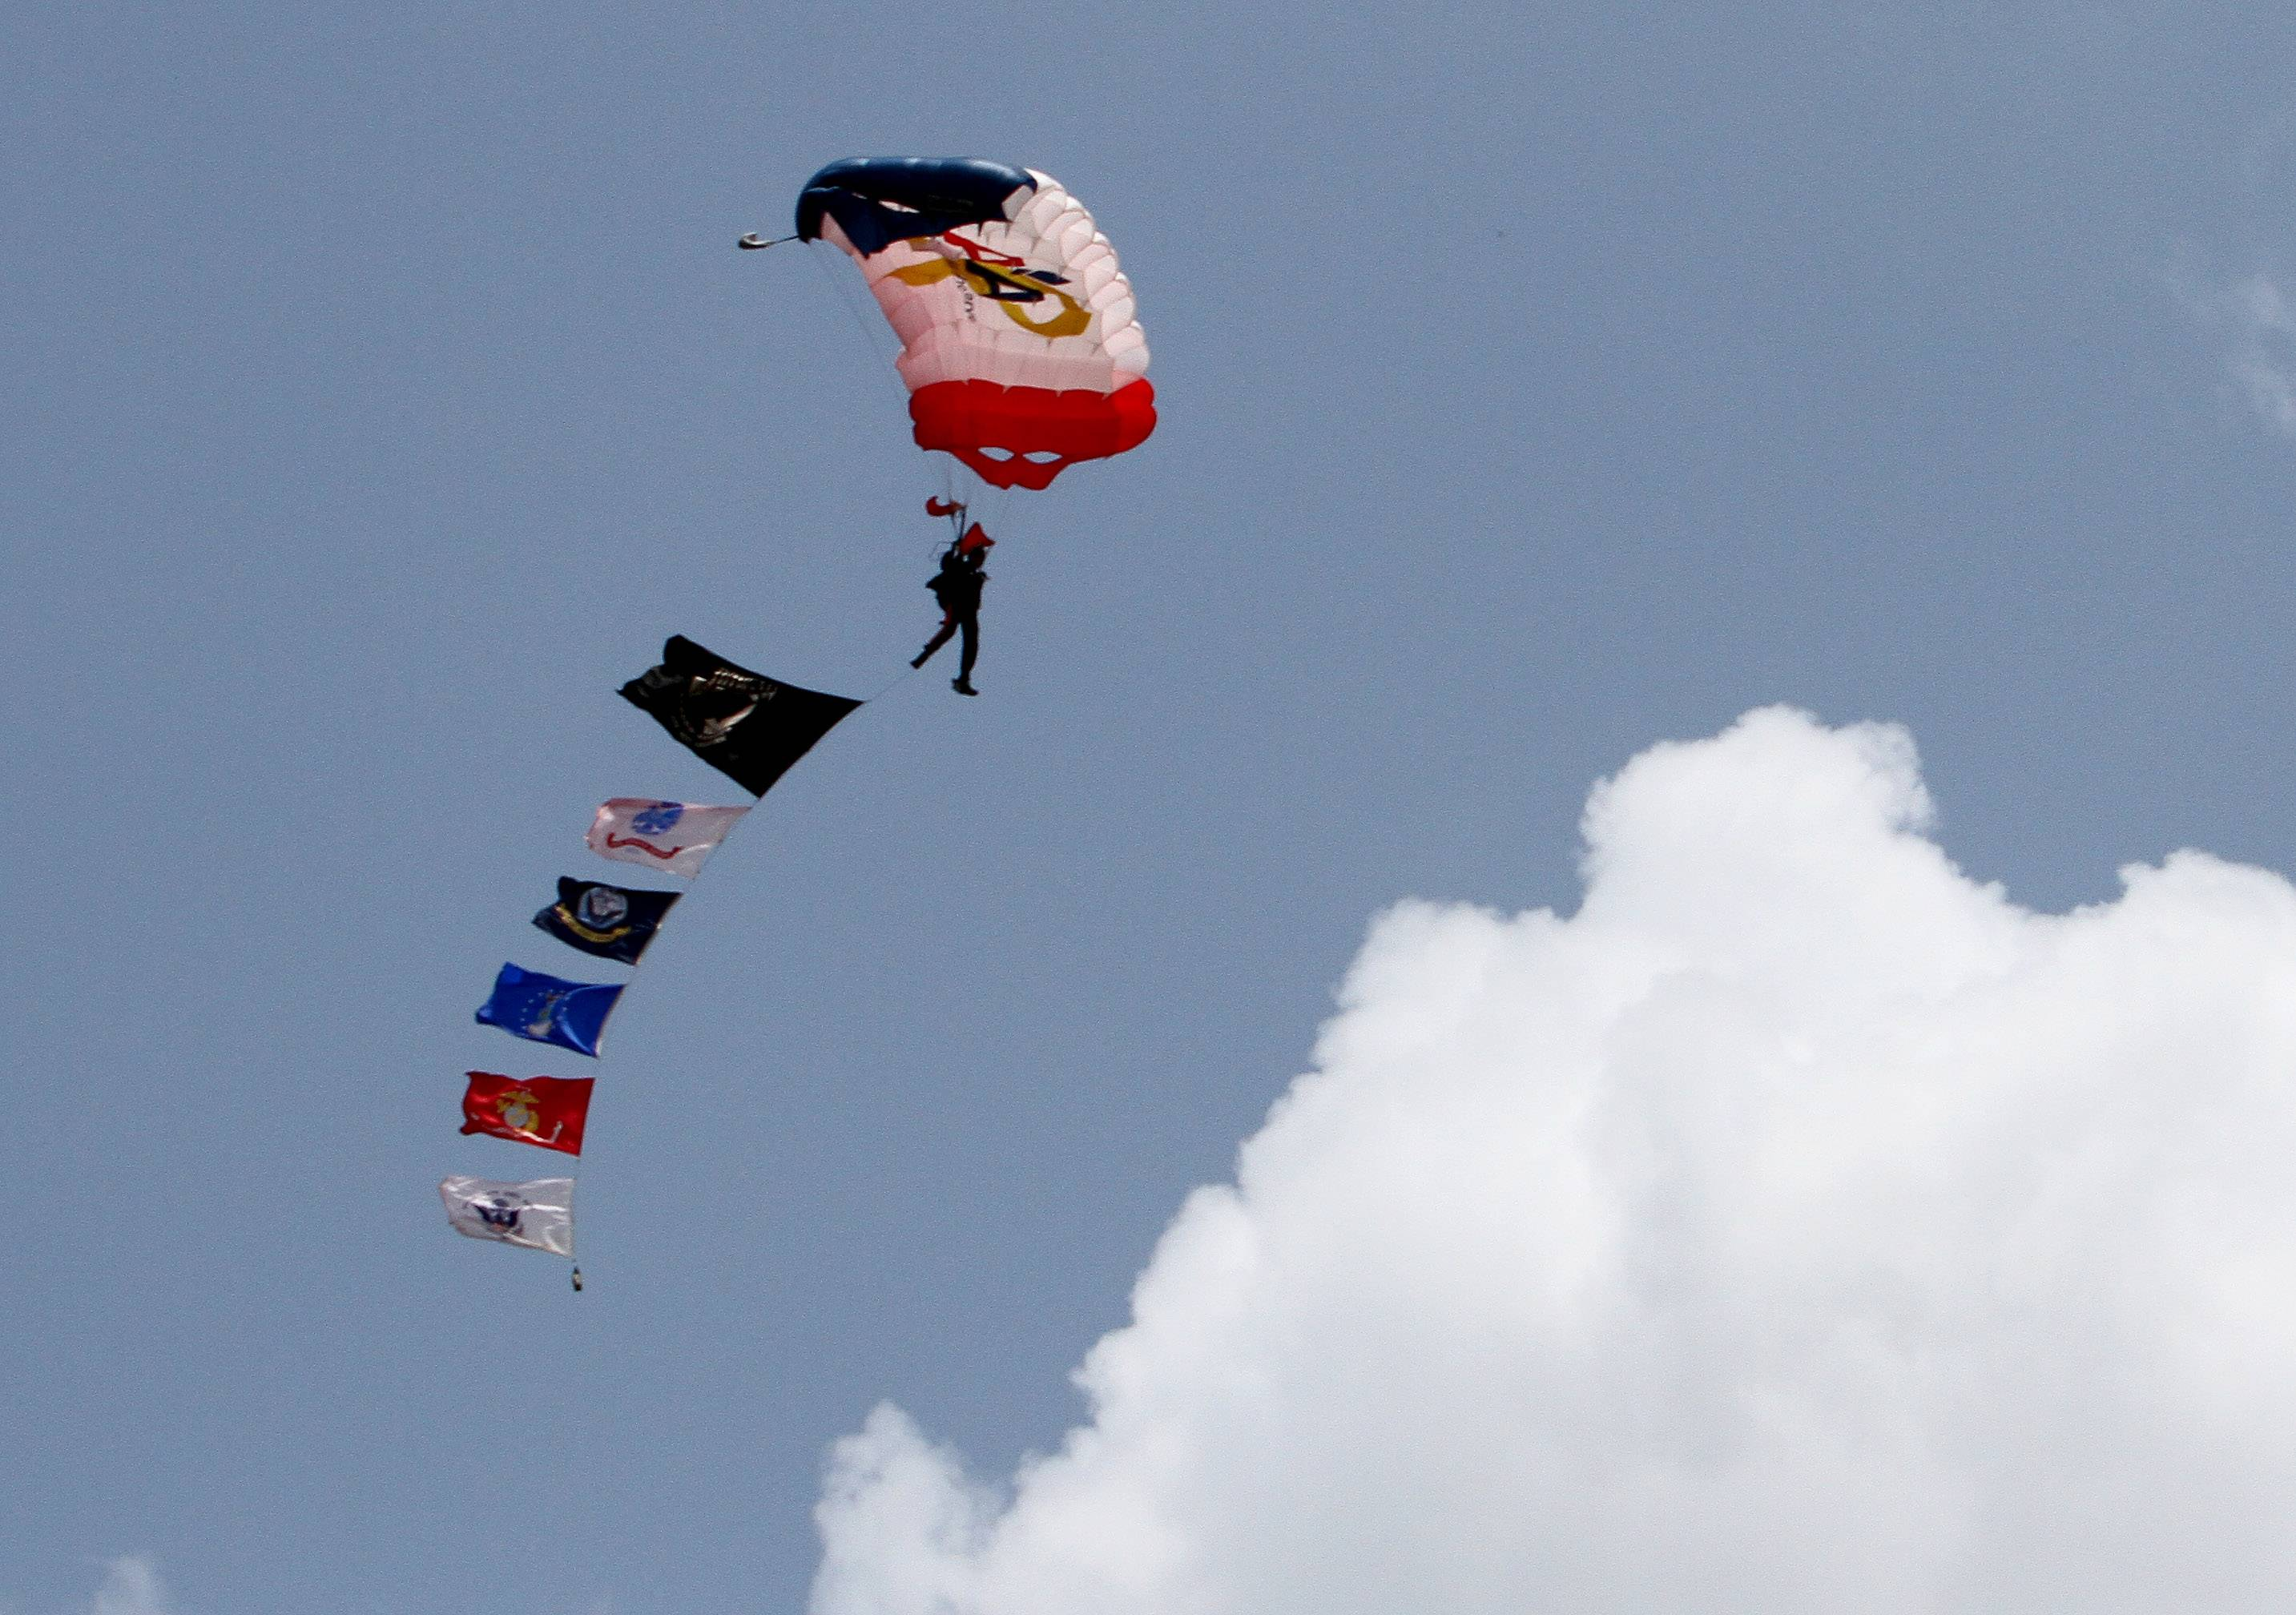 Members of the North Carolina-based All Veteran Parachute Team make a jump Friday into Cantigny Park in Wheaton. The team works with Lisle-based Operation Support Our Troops America to provide tandem sky-dives to veterans and Gold Star families.